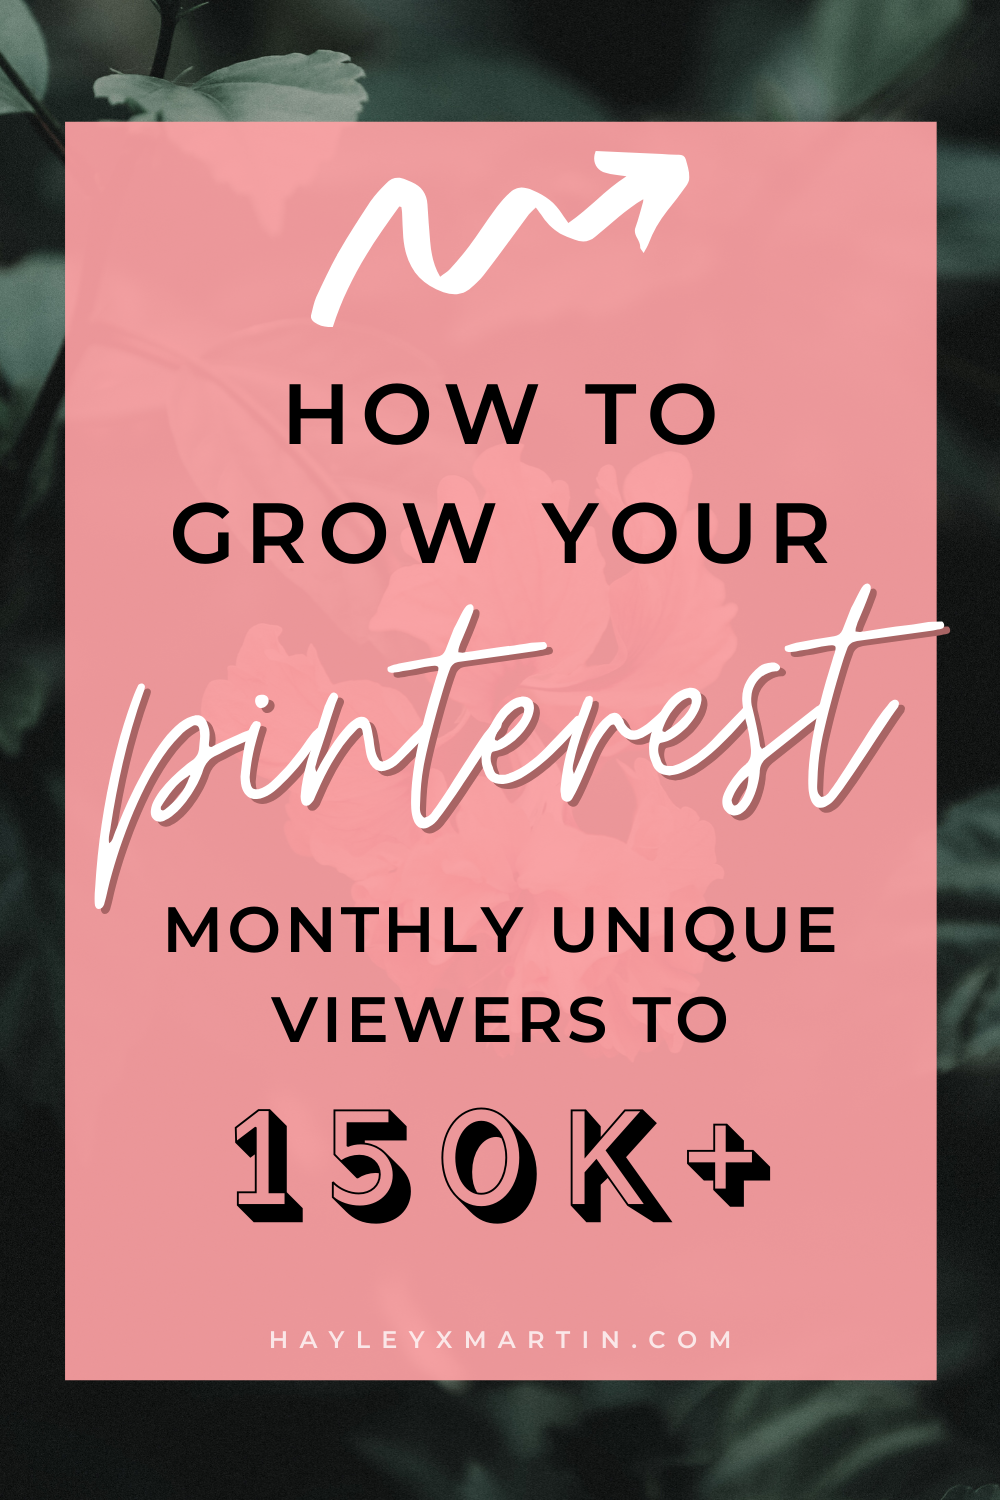 how to grow your pinterest monthly unique viewers to 150K+ | pinterest | blog traffic | increase traffic | more views | hayleyxmartin